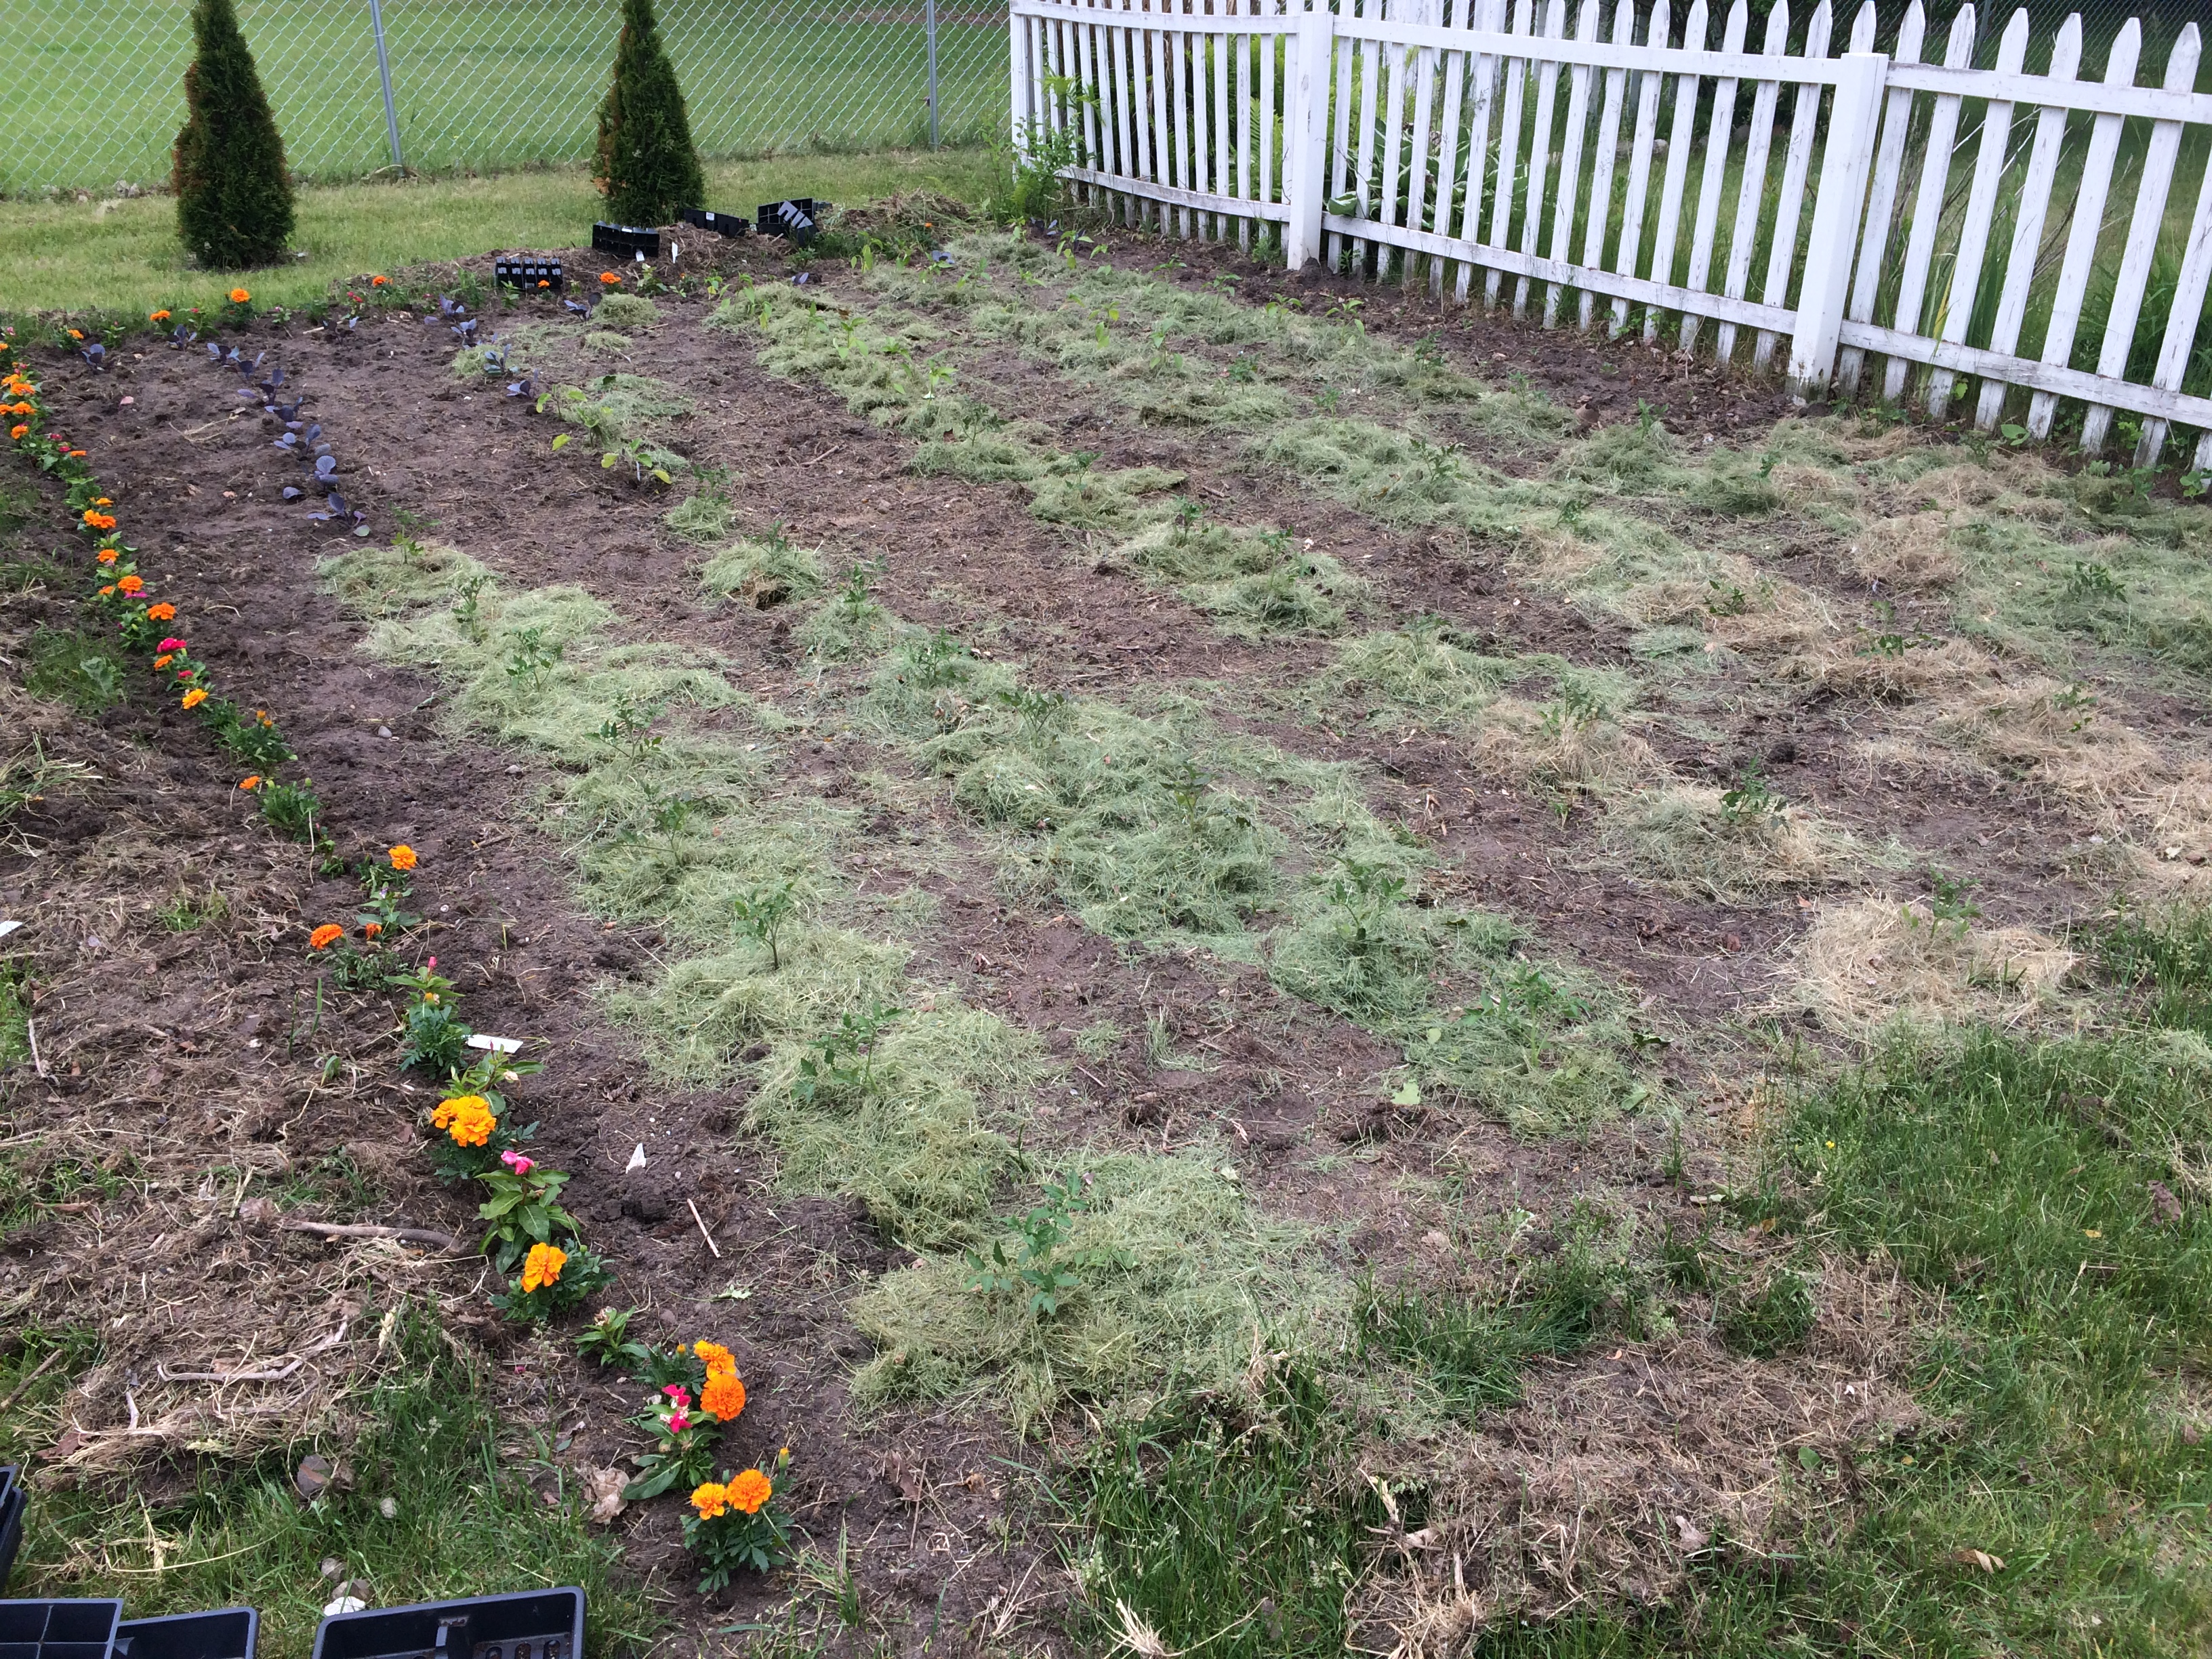 Using Grass Clippings to Prevent Weeds